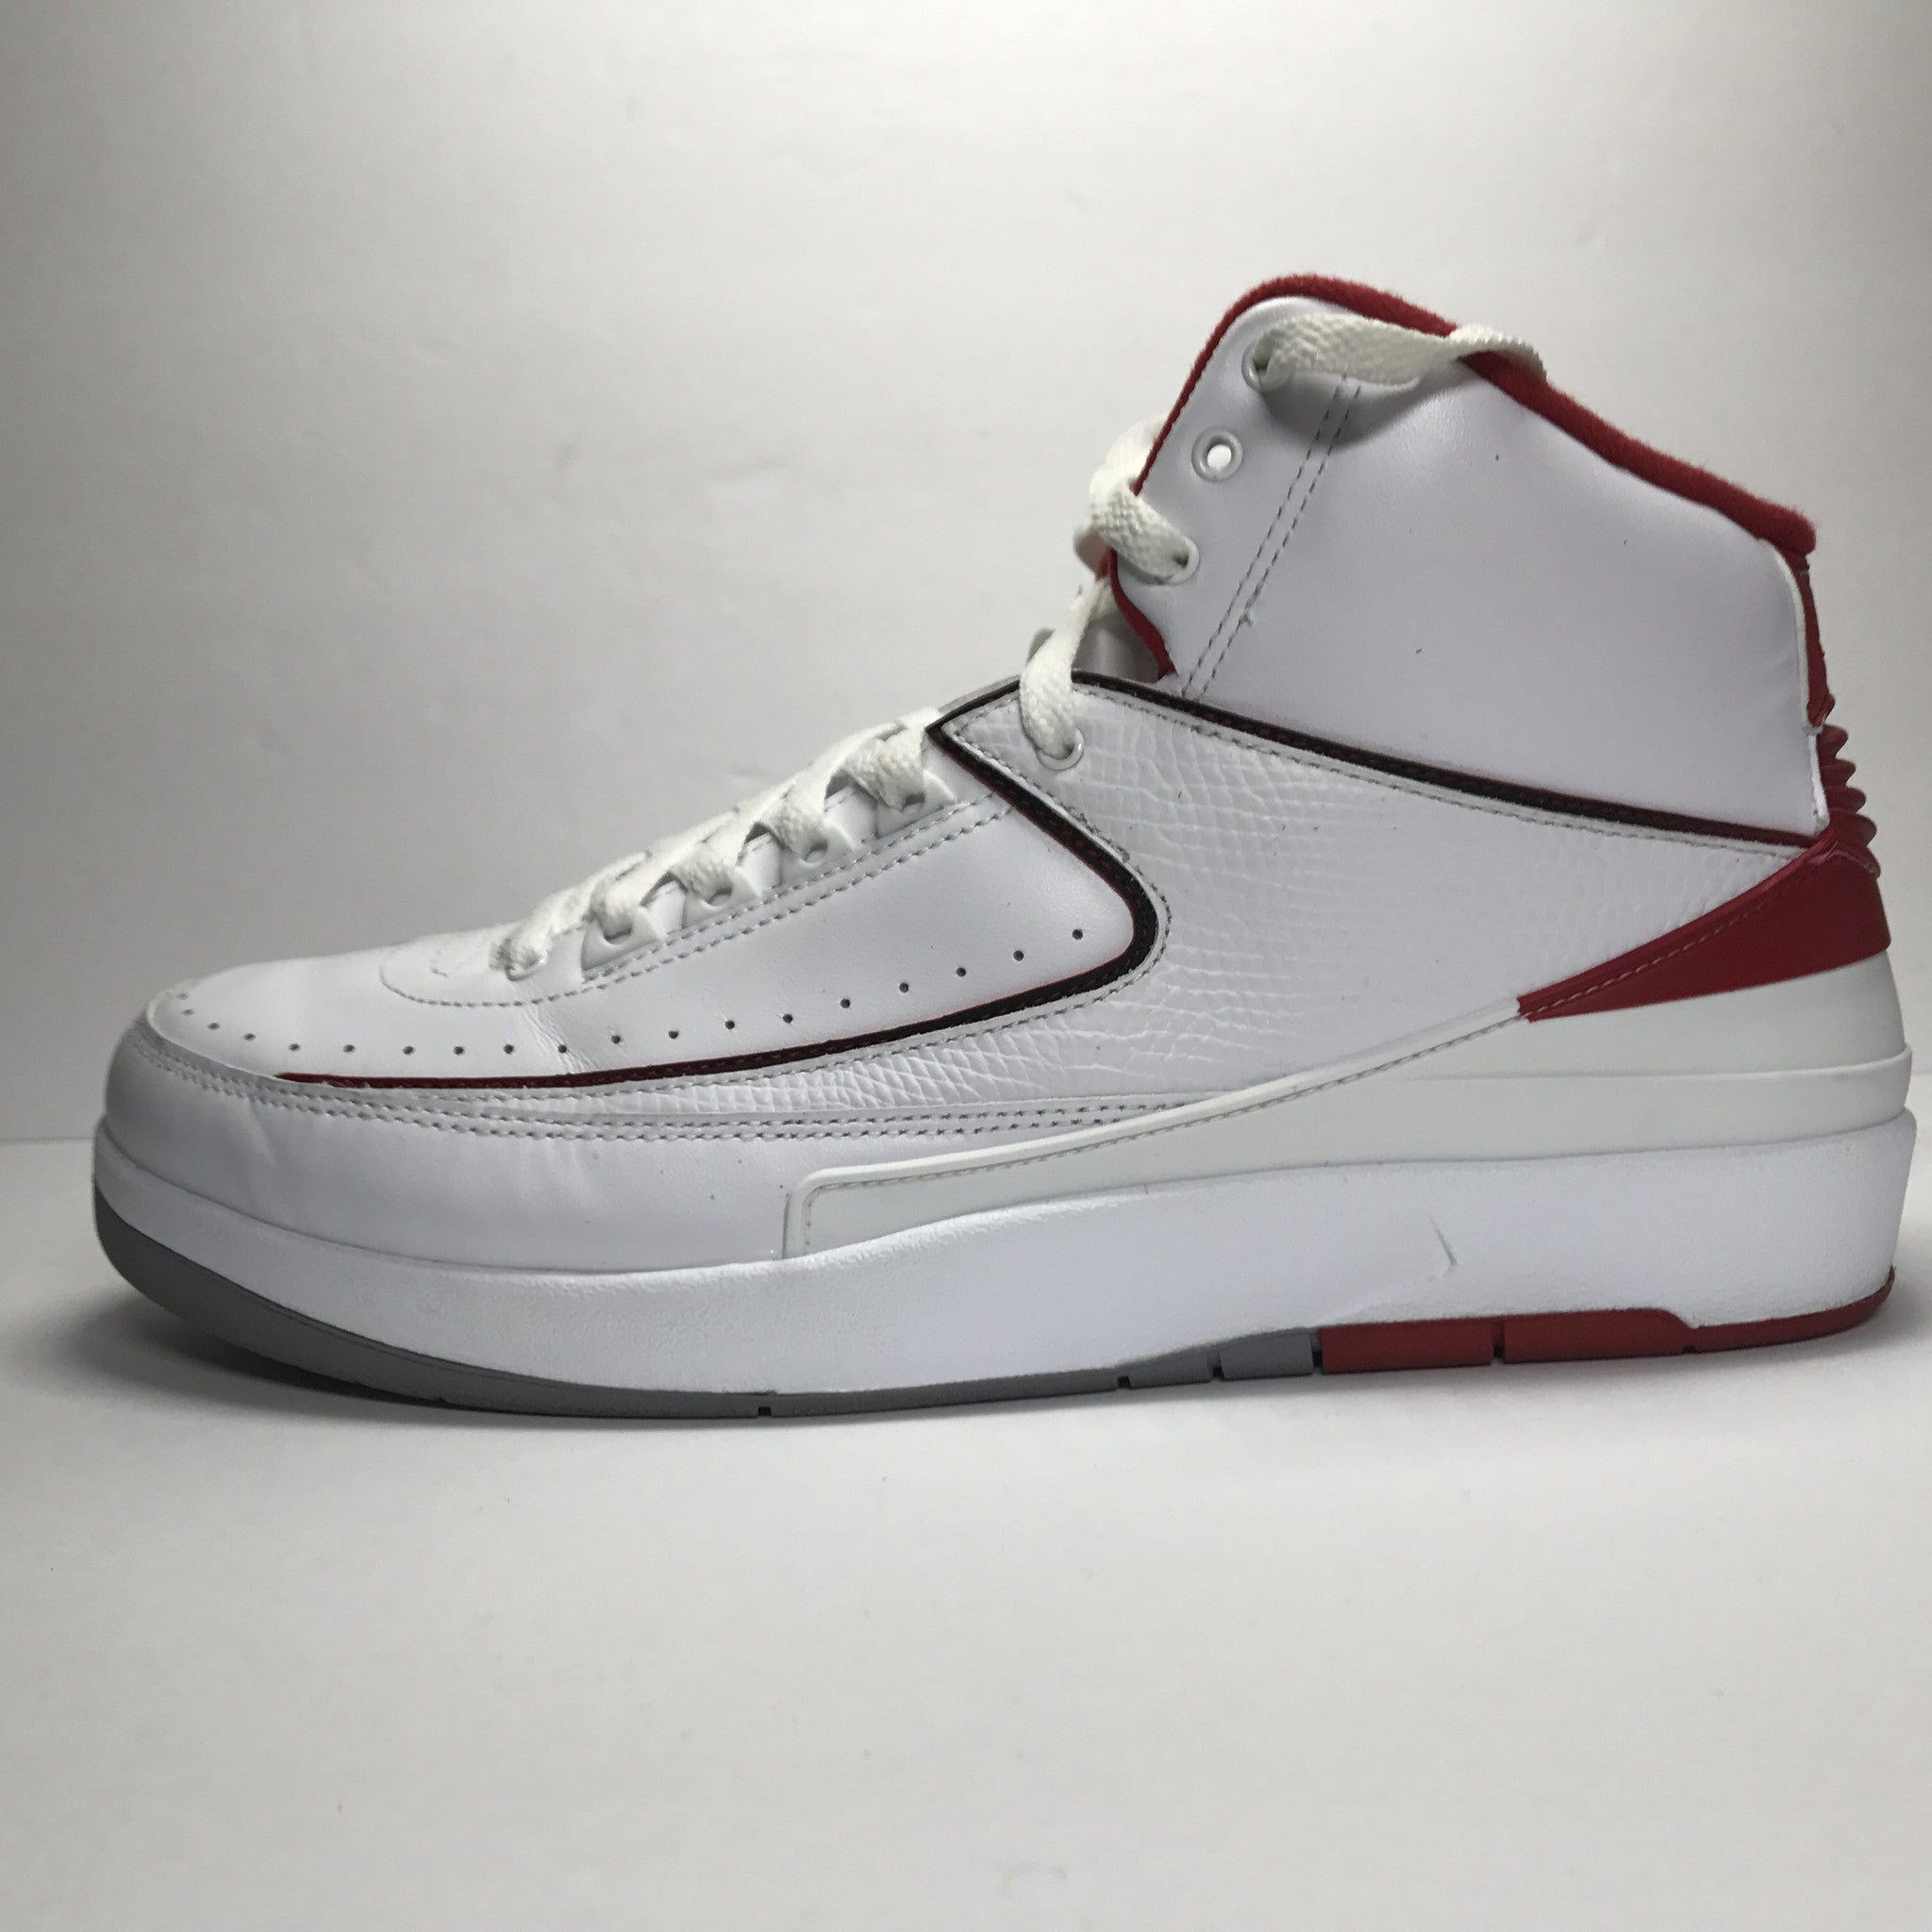 Nike Air Jordan 2 II Retro White/Red Size 11.5